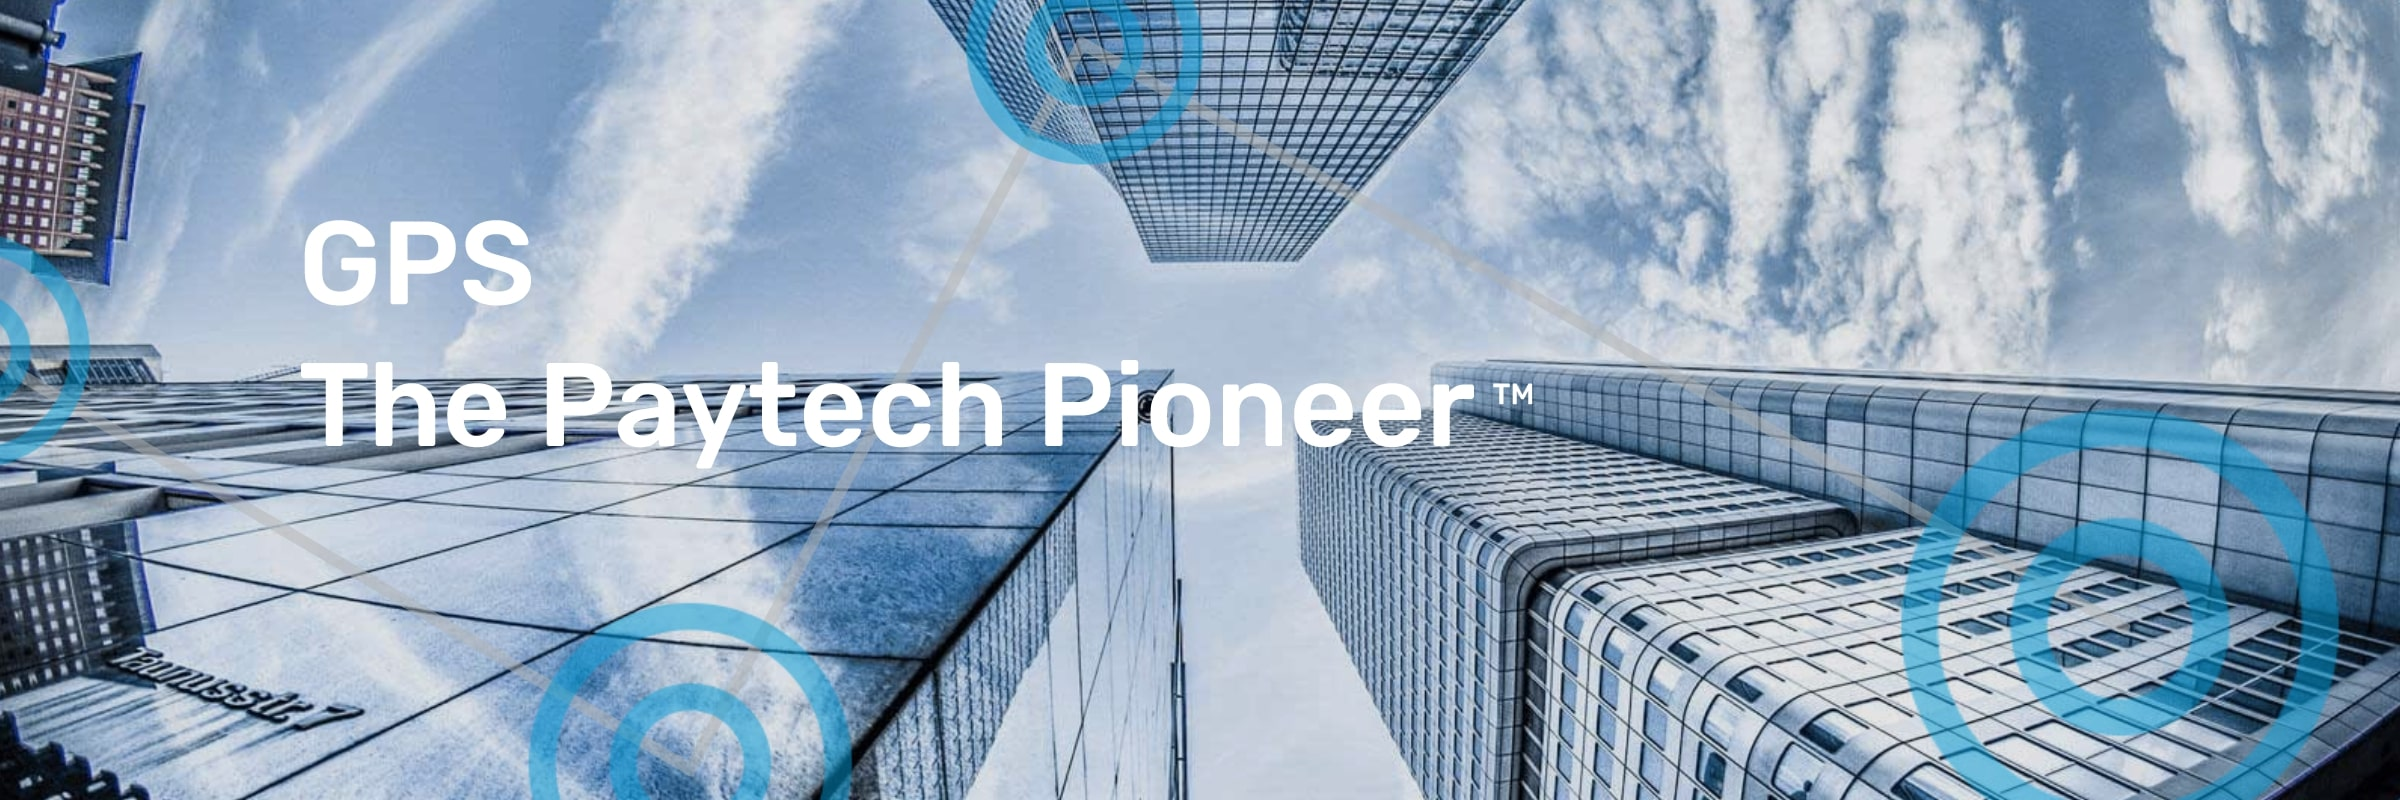 gps-the-paytech-pioneer-slogan-buildings-behind-2